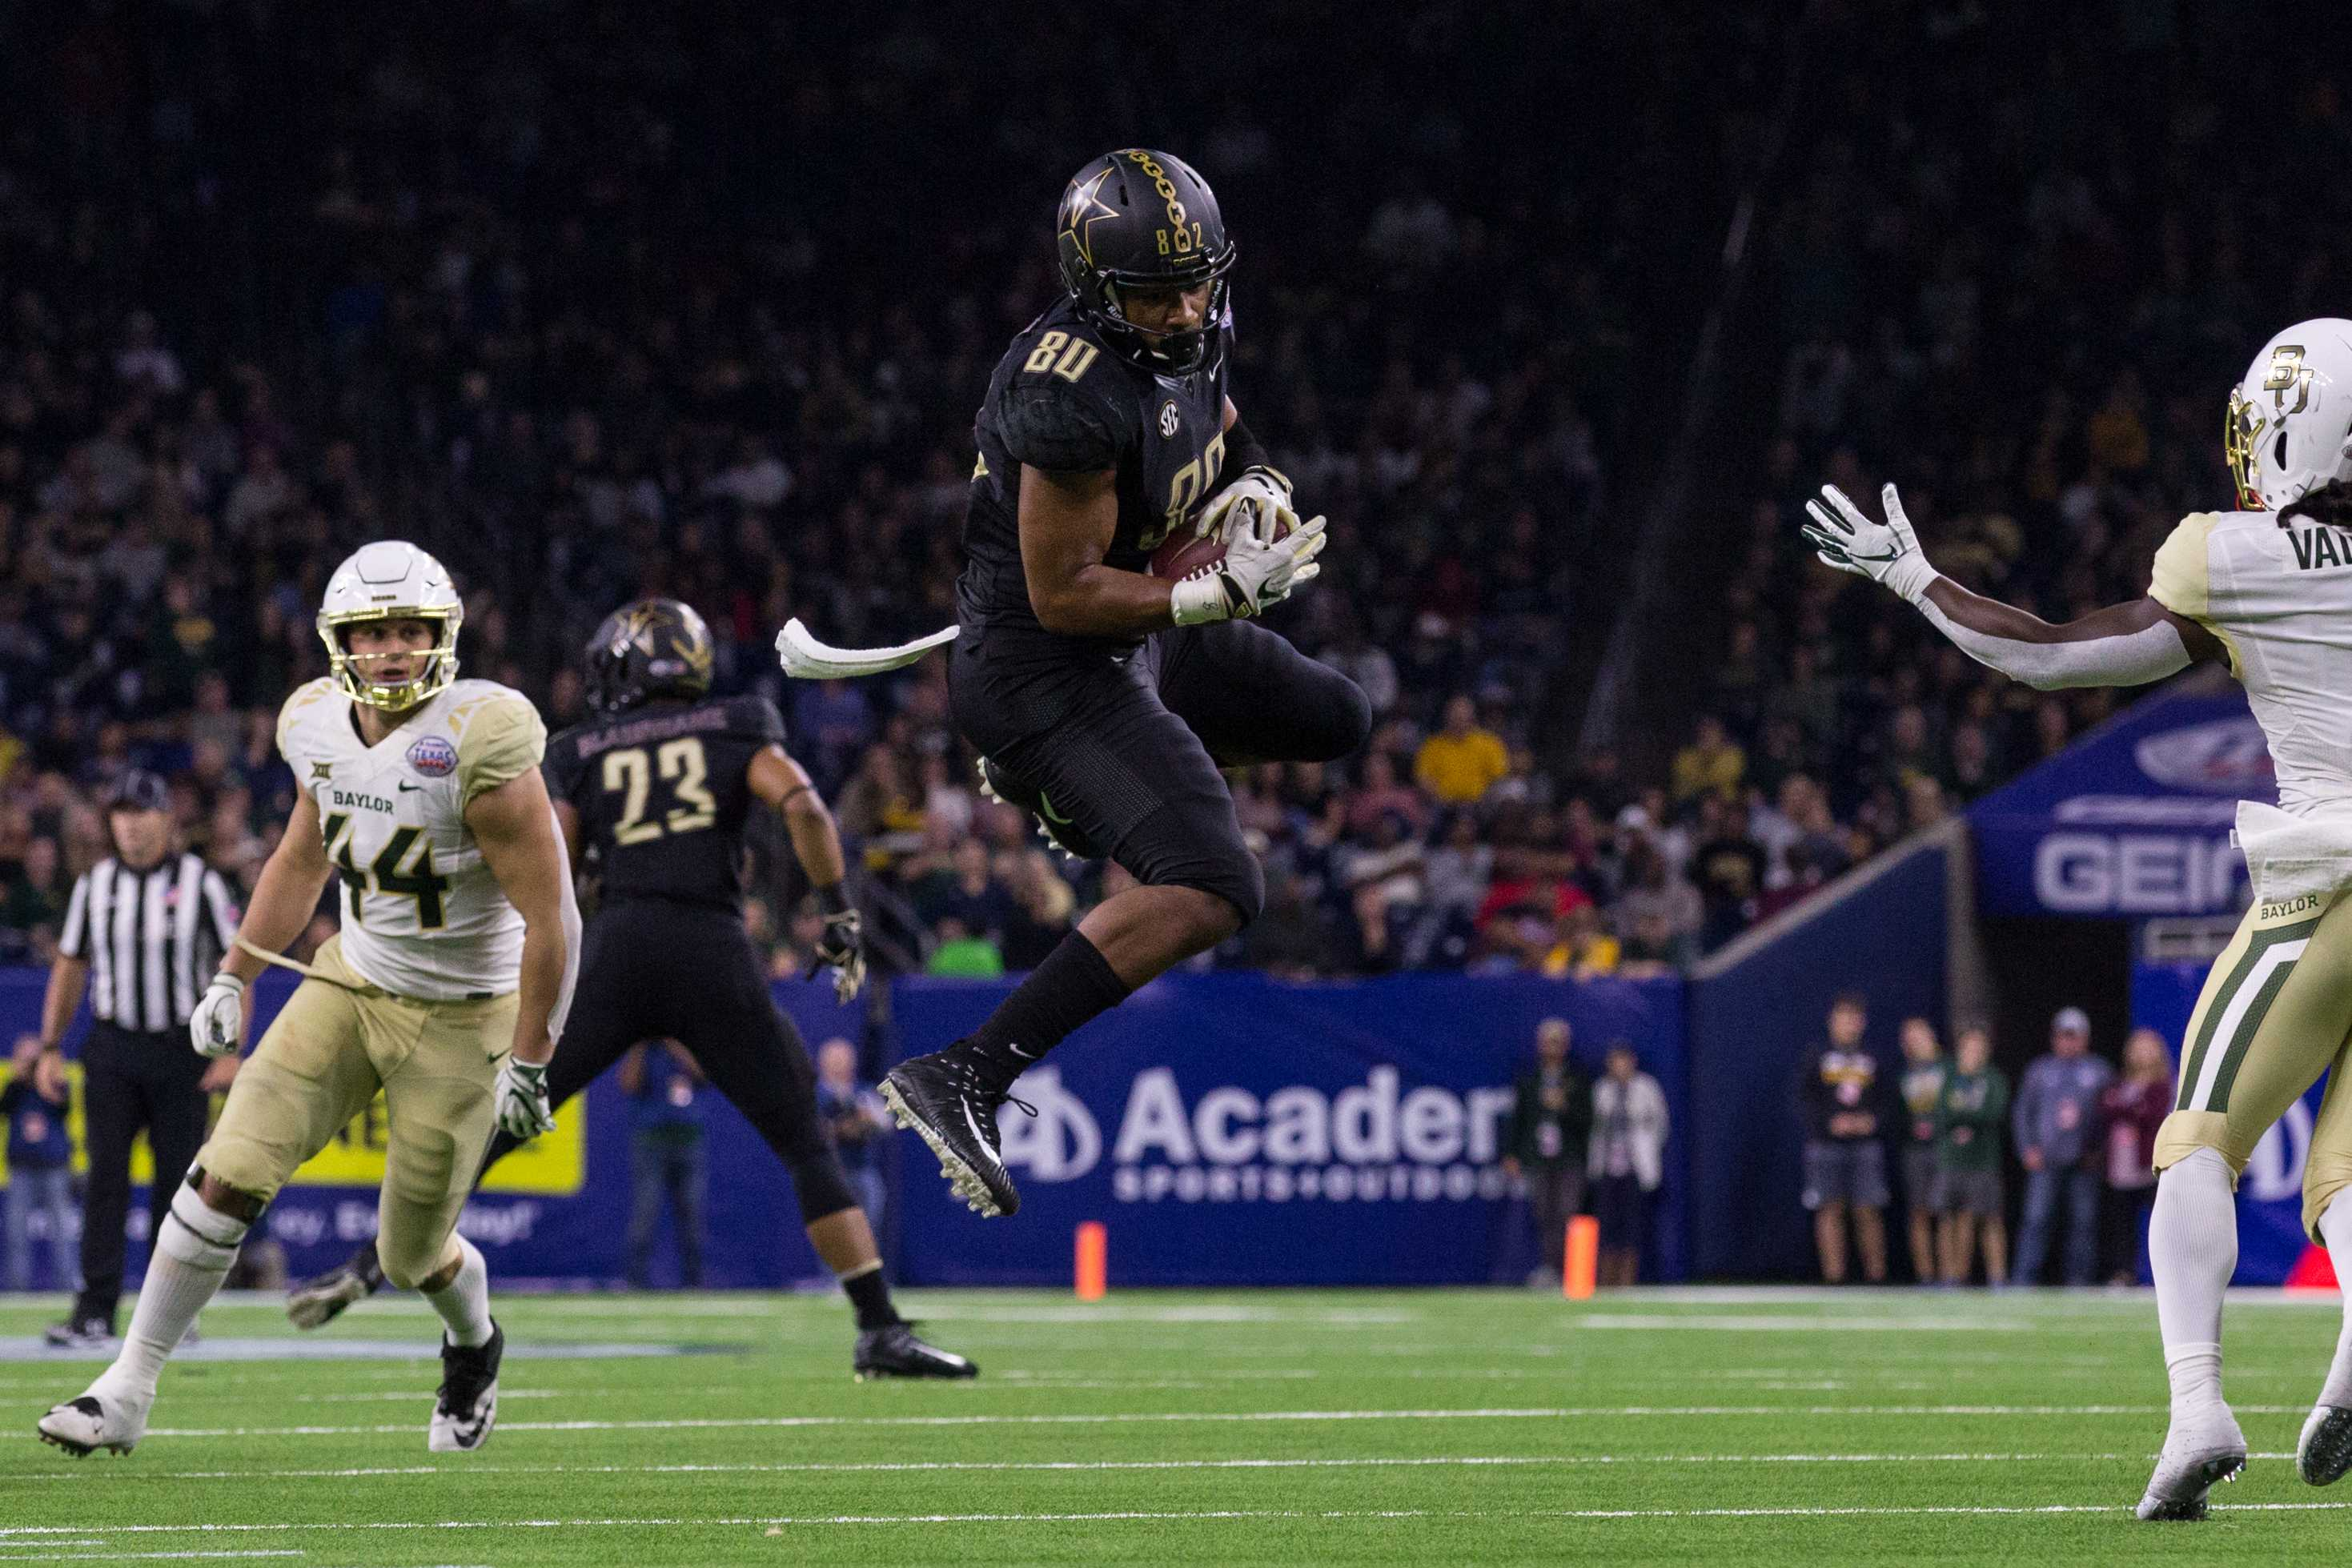 IN PHOTOS: Texas Bowl vs. Baylor